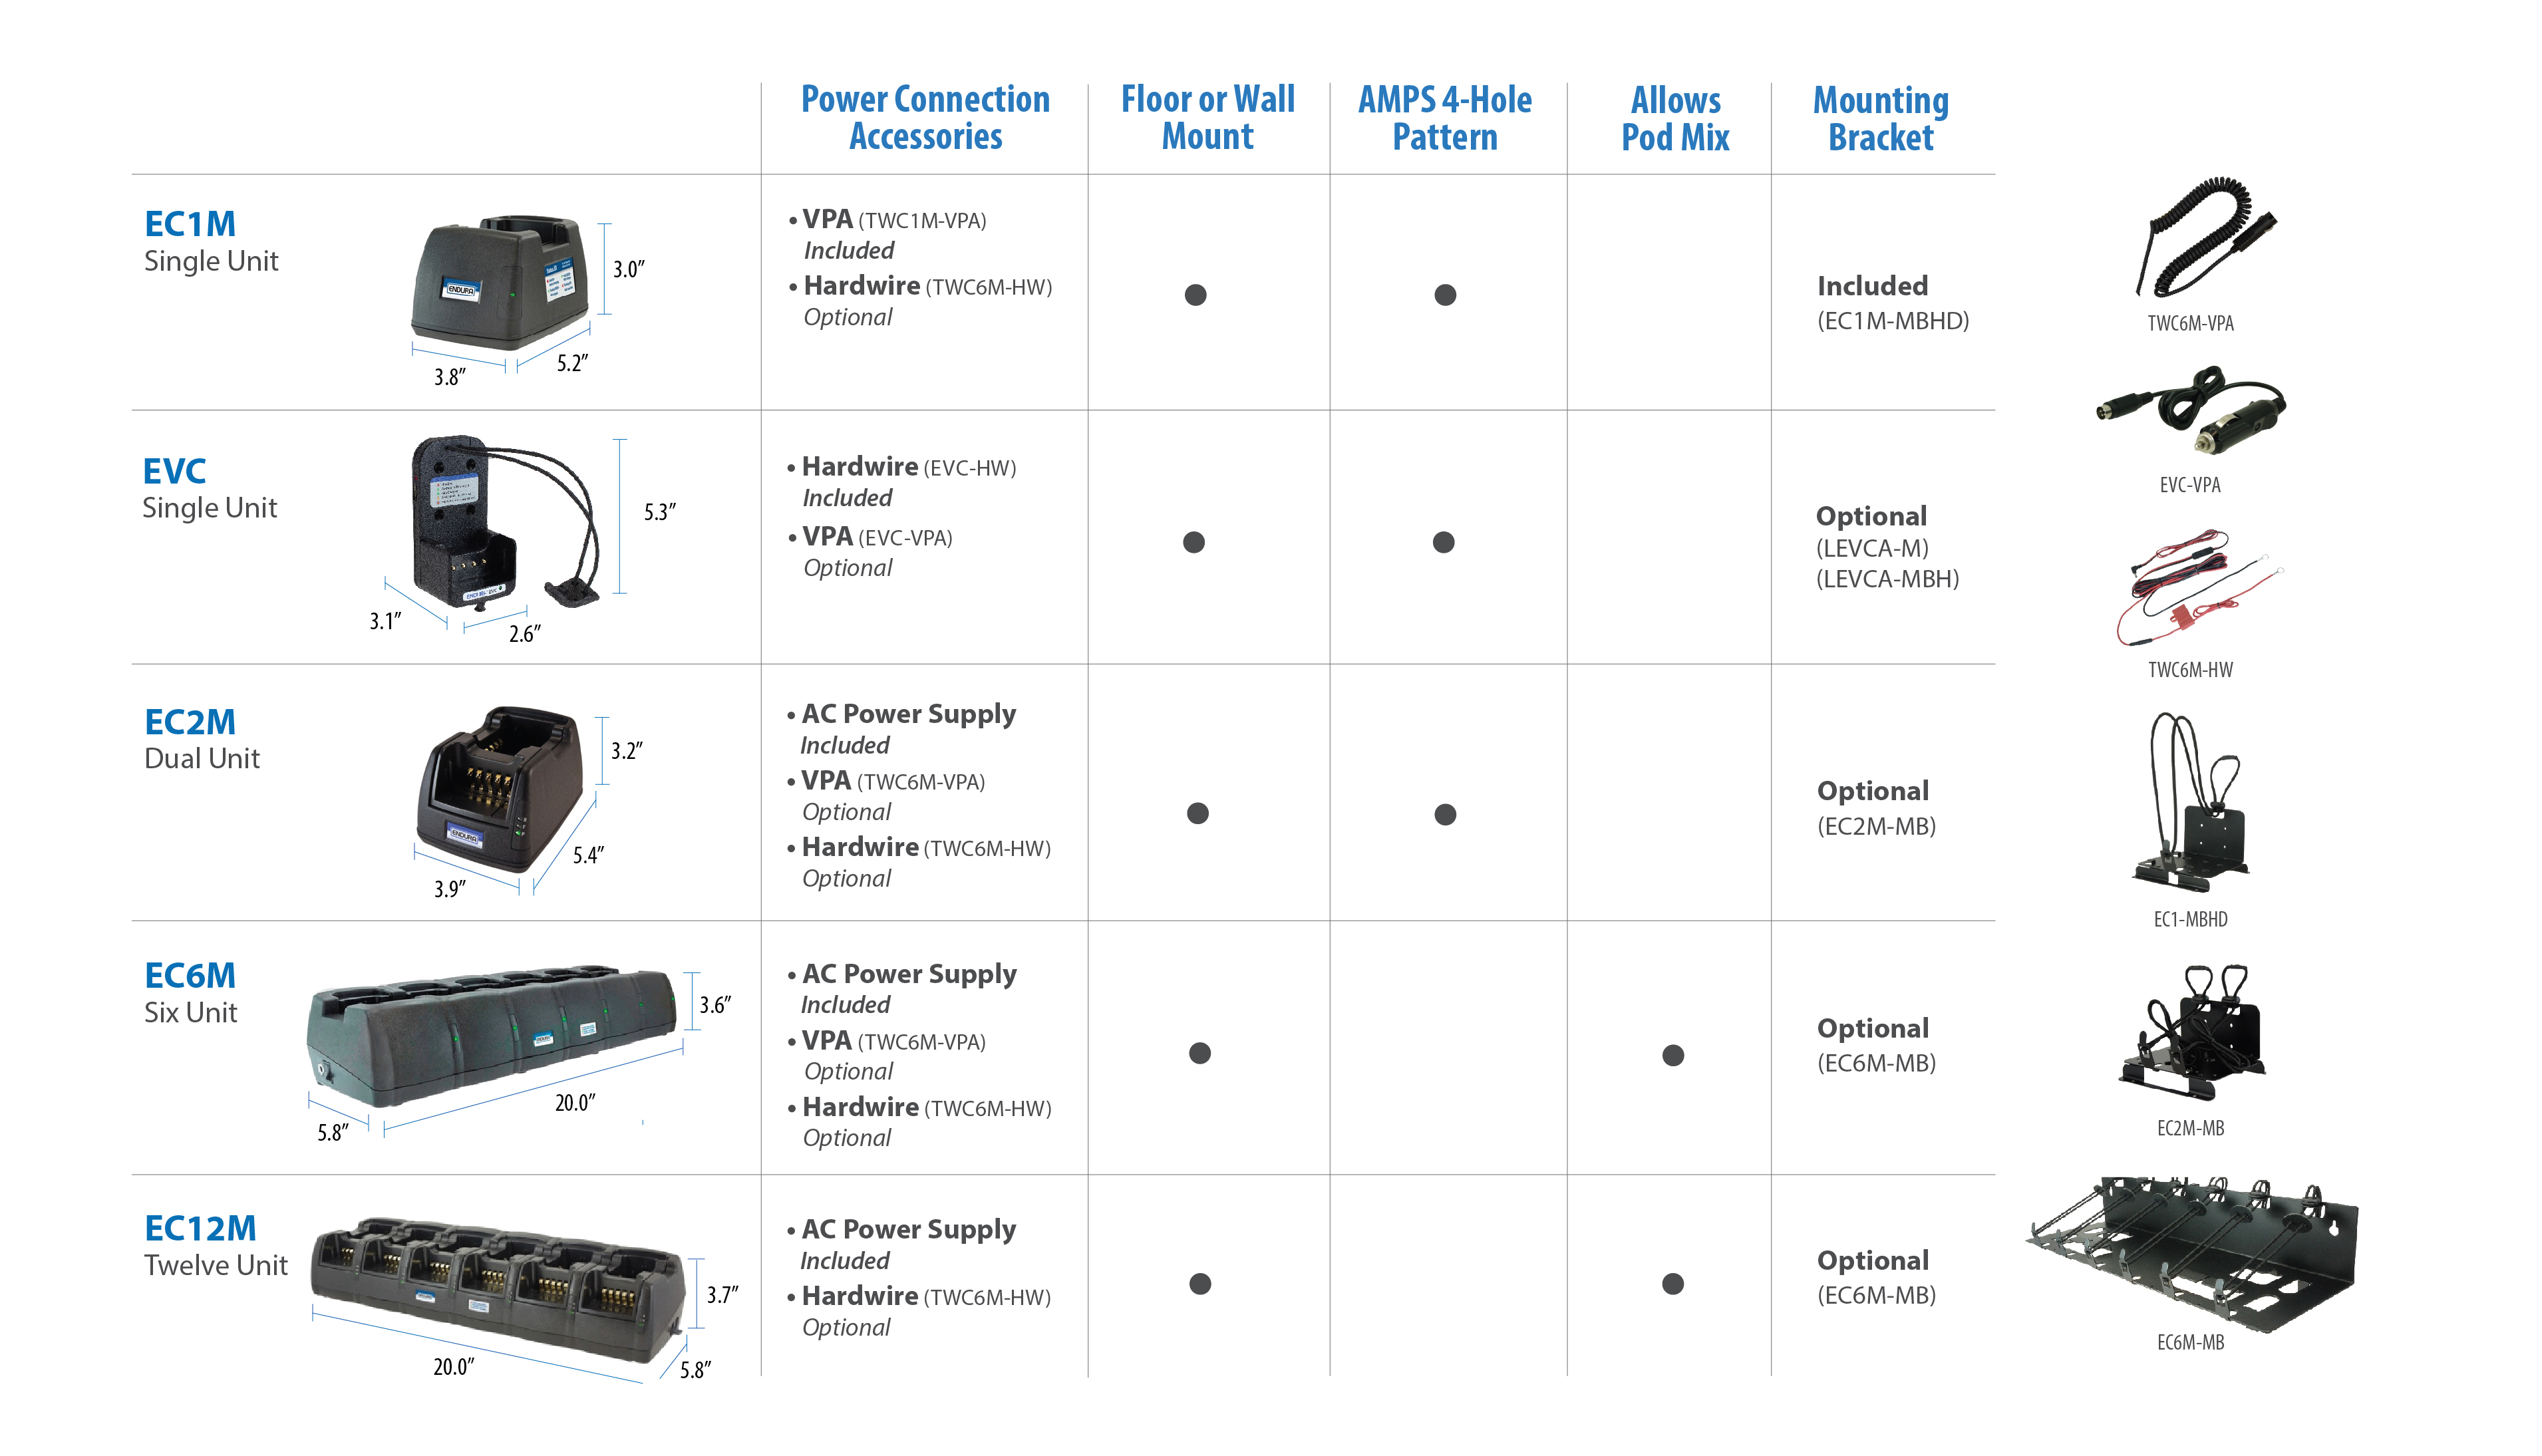 Specifications for Endura Chargers